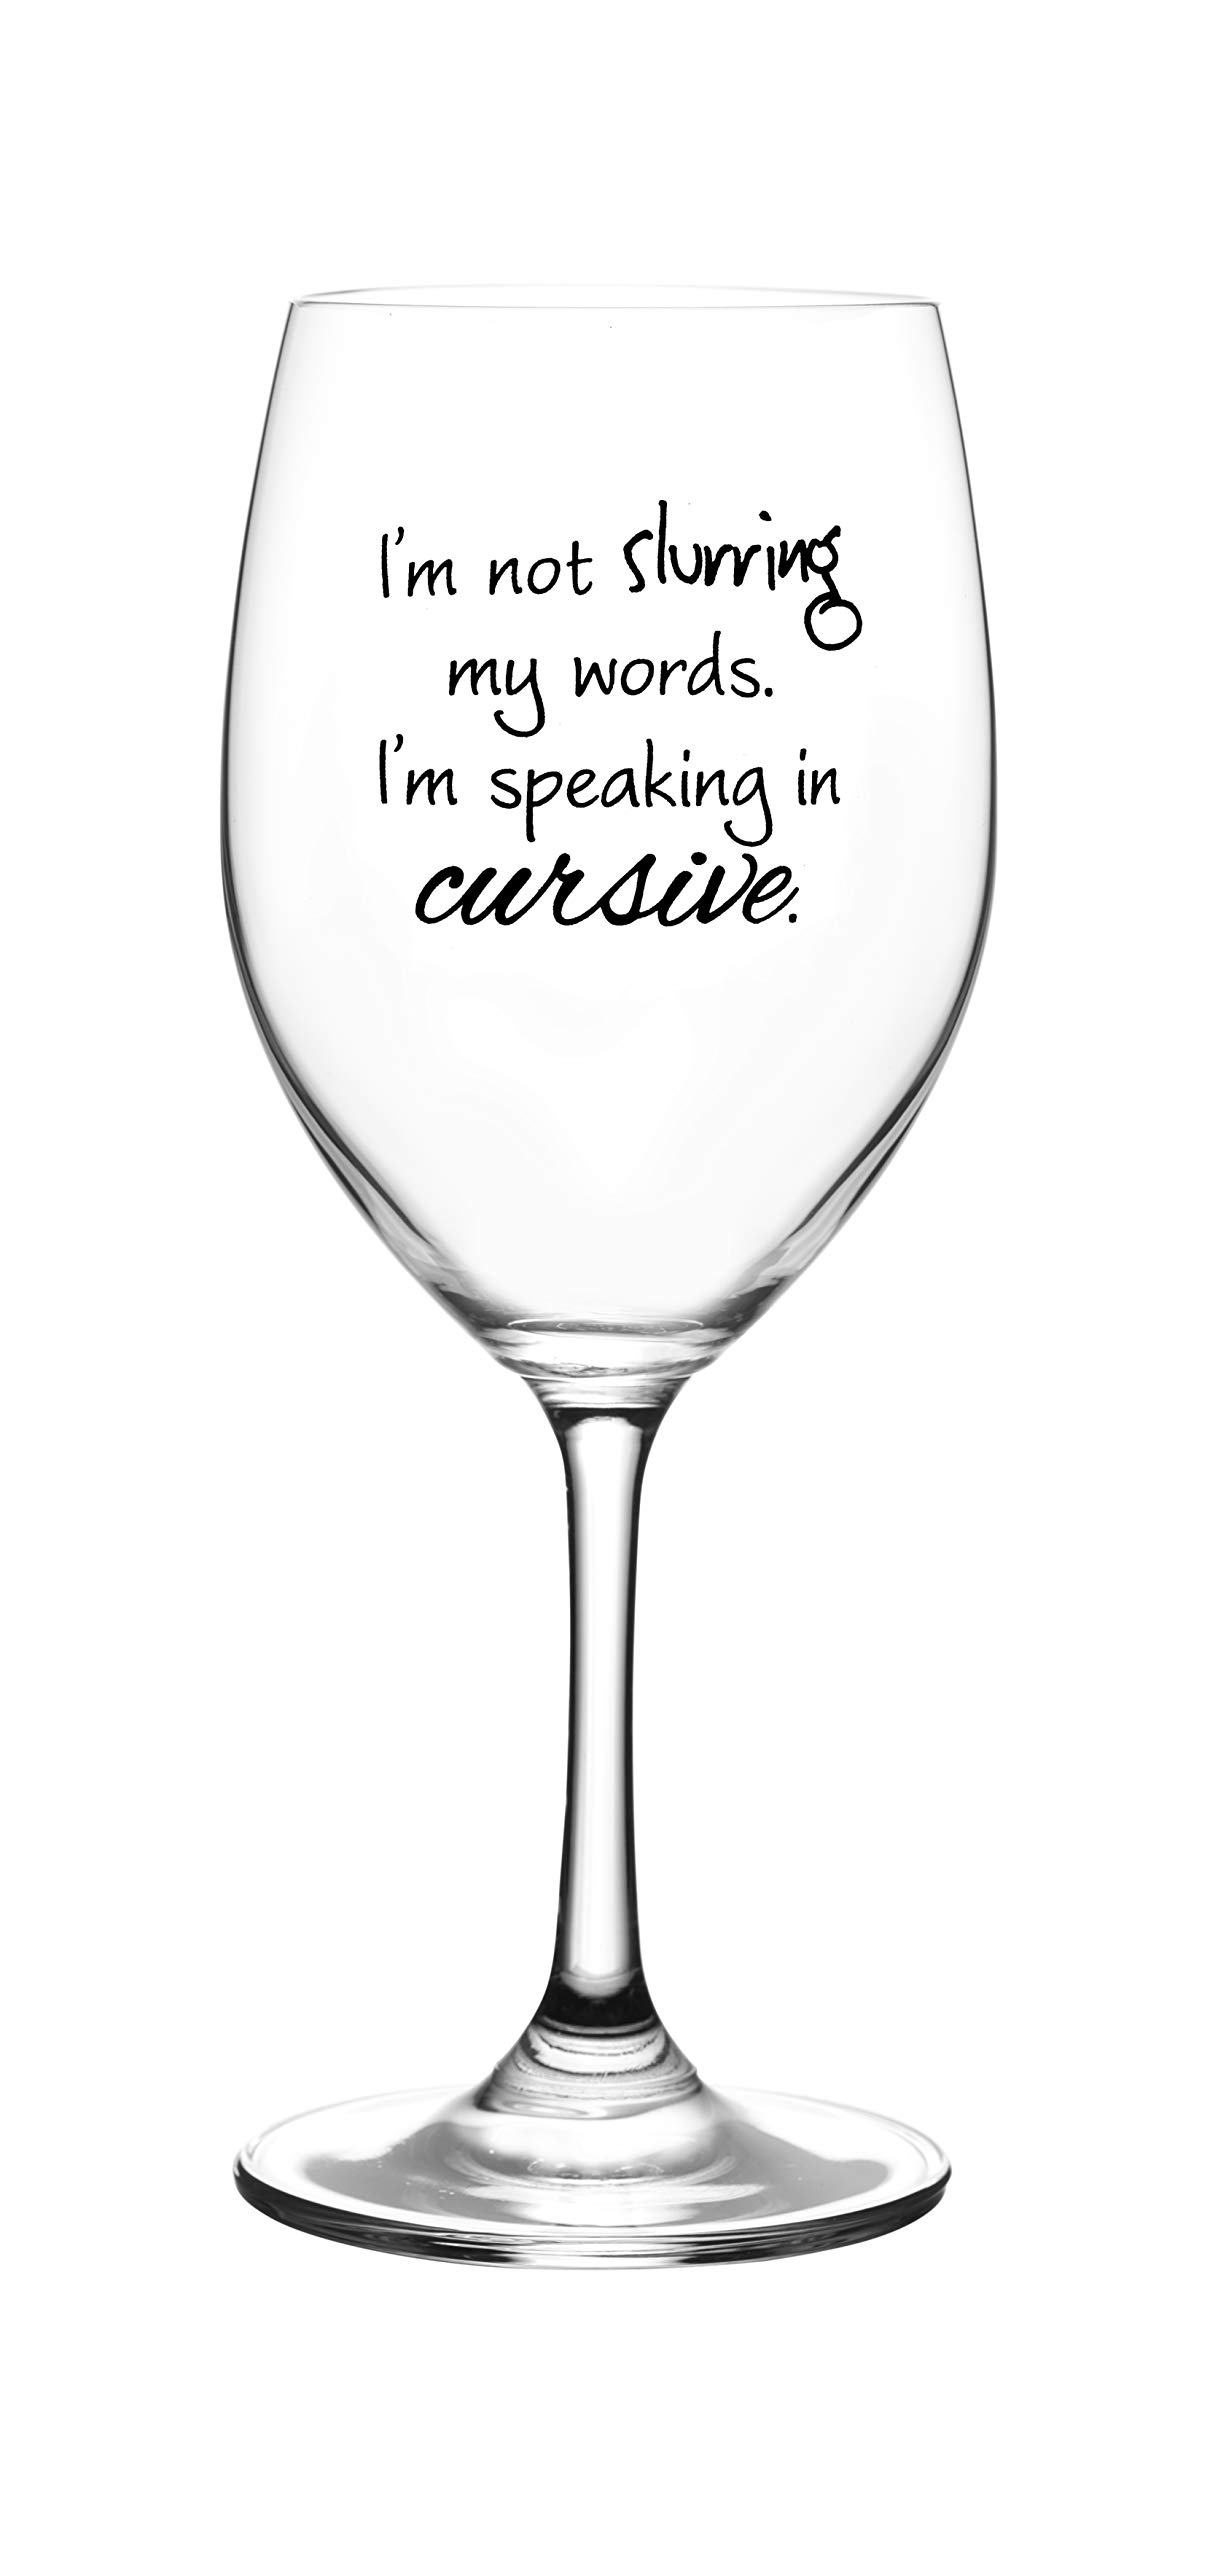 I'm Not Slurring My Words. I'm Speaking in Cursive - Cute, Novelty, Etched Wine Glass by Lushy Wino - Large 16 Ounce Size with Funny, Etched Sayings - Gift Box by Lushy Wino (Image #1)